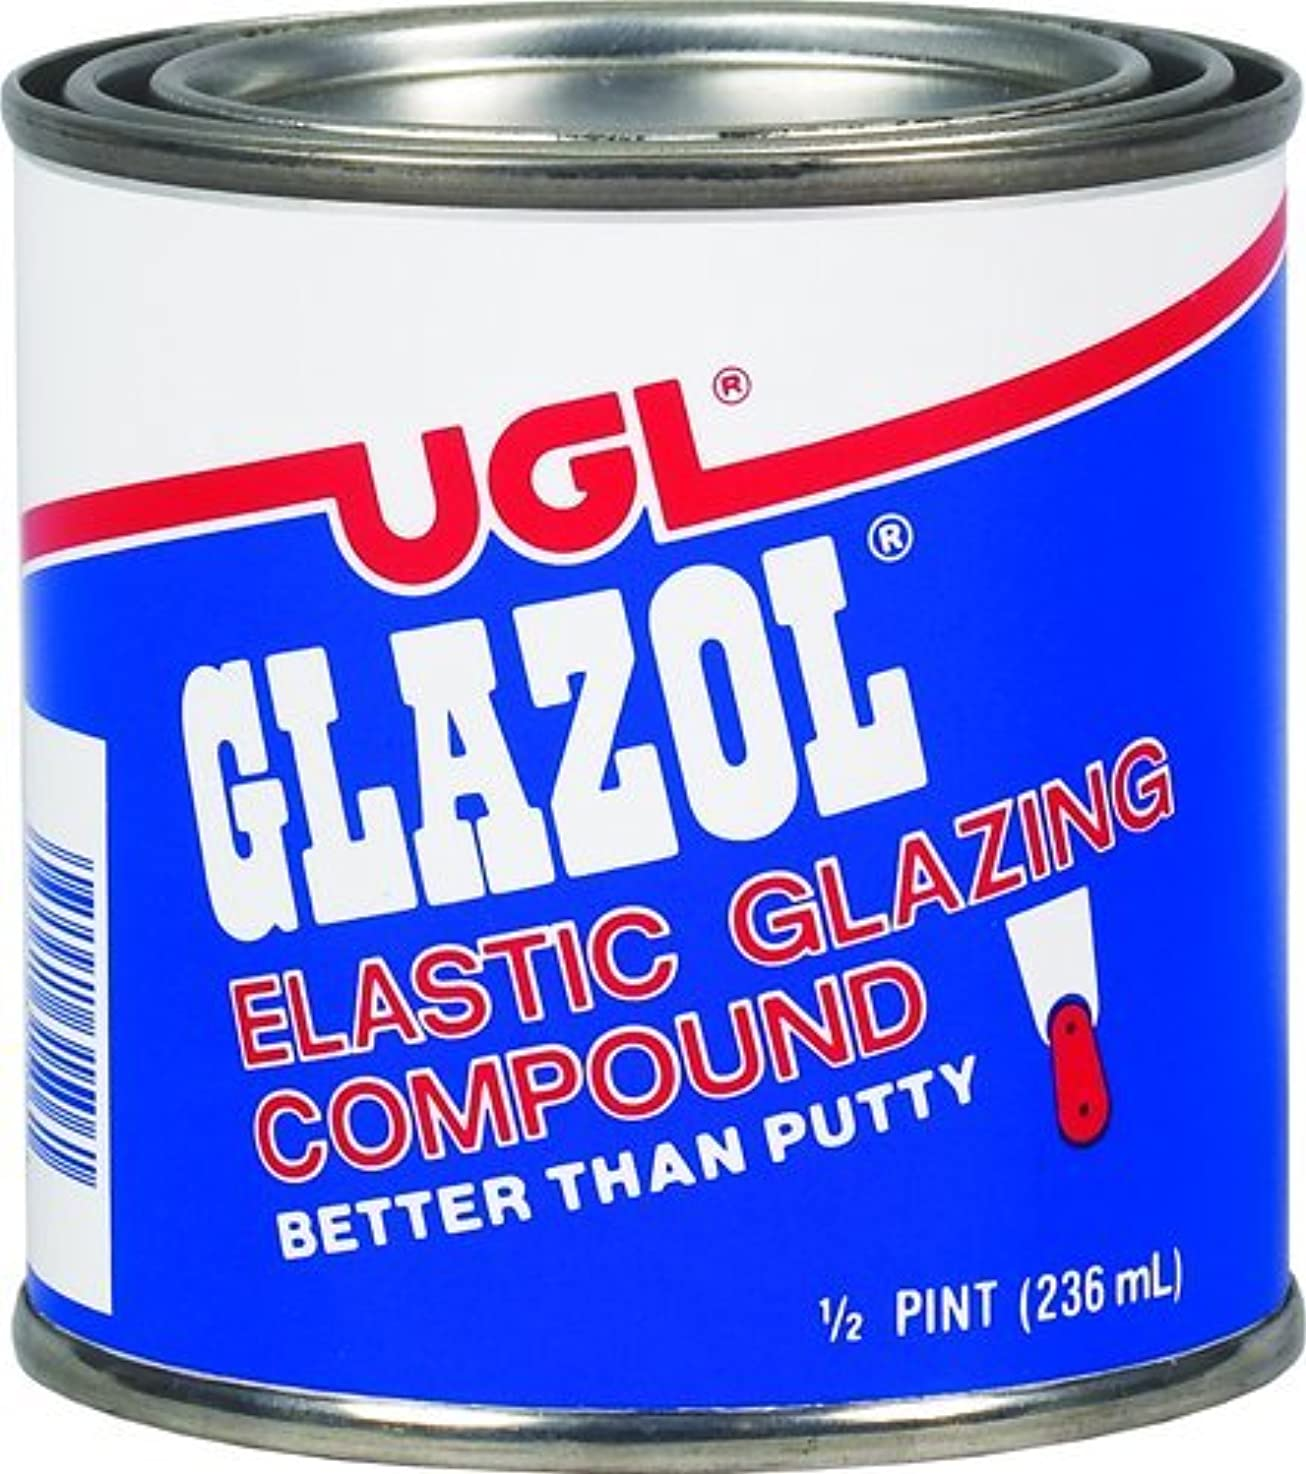 UGL 31506 Glazing Compound